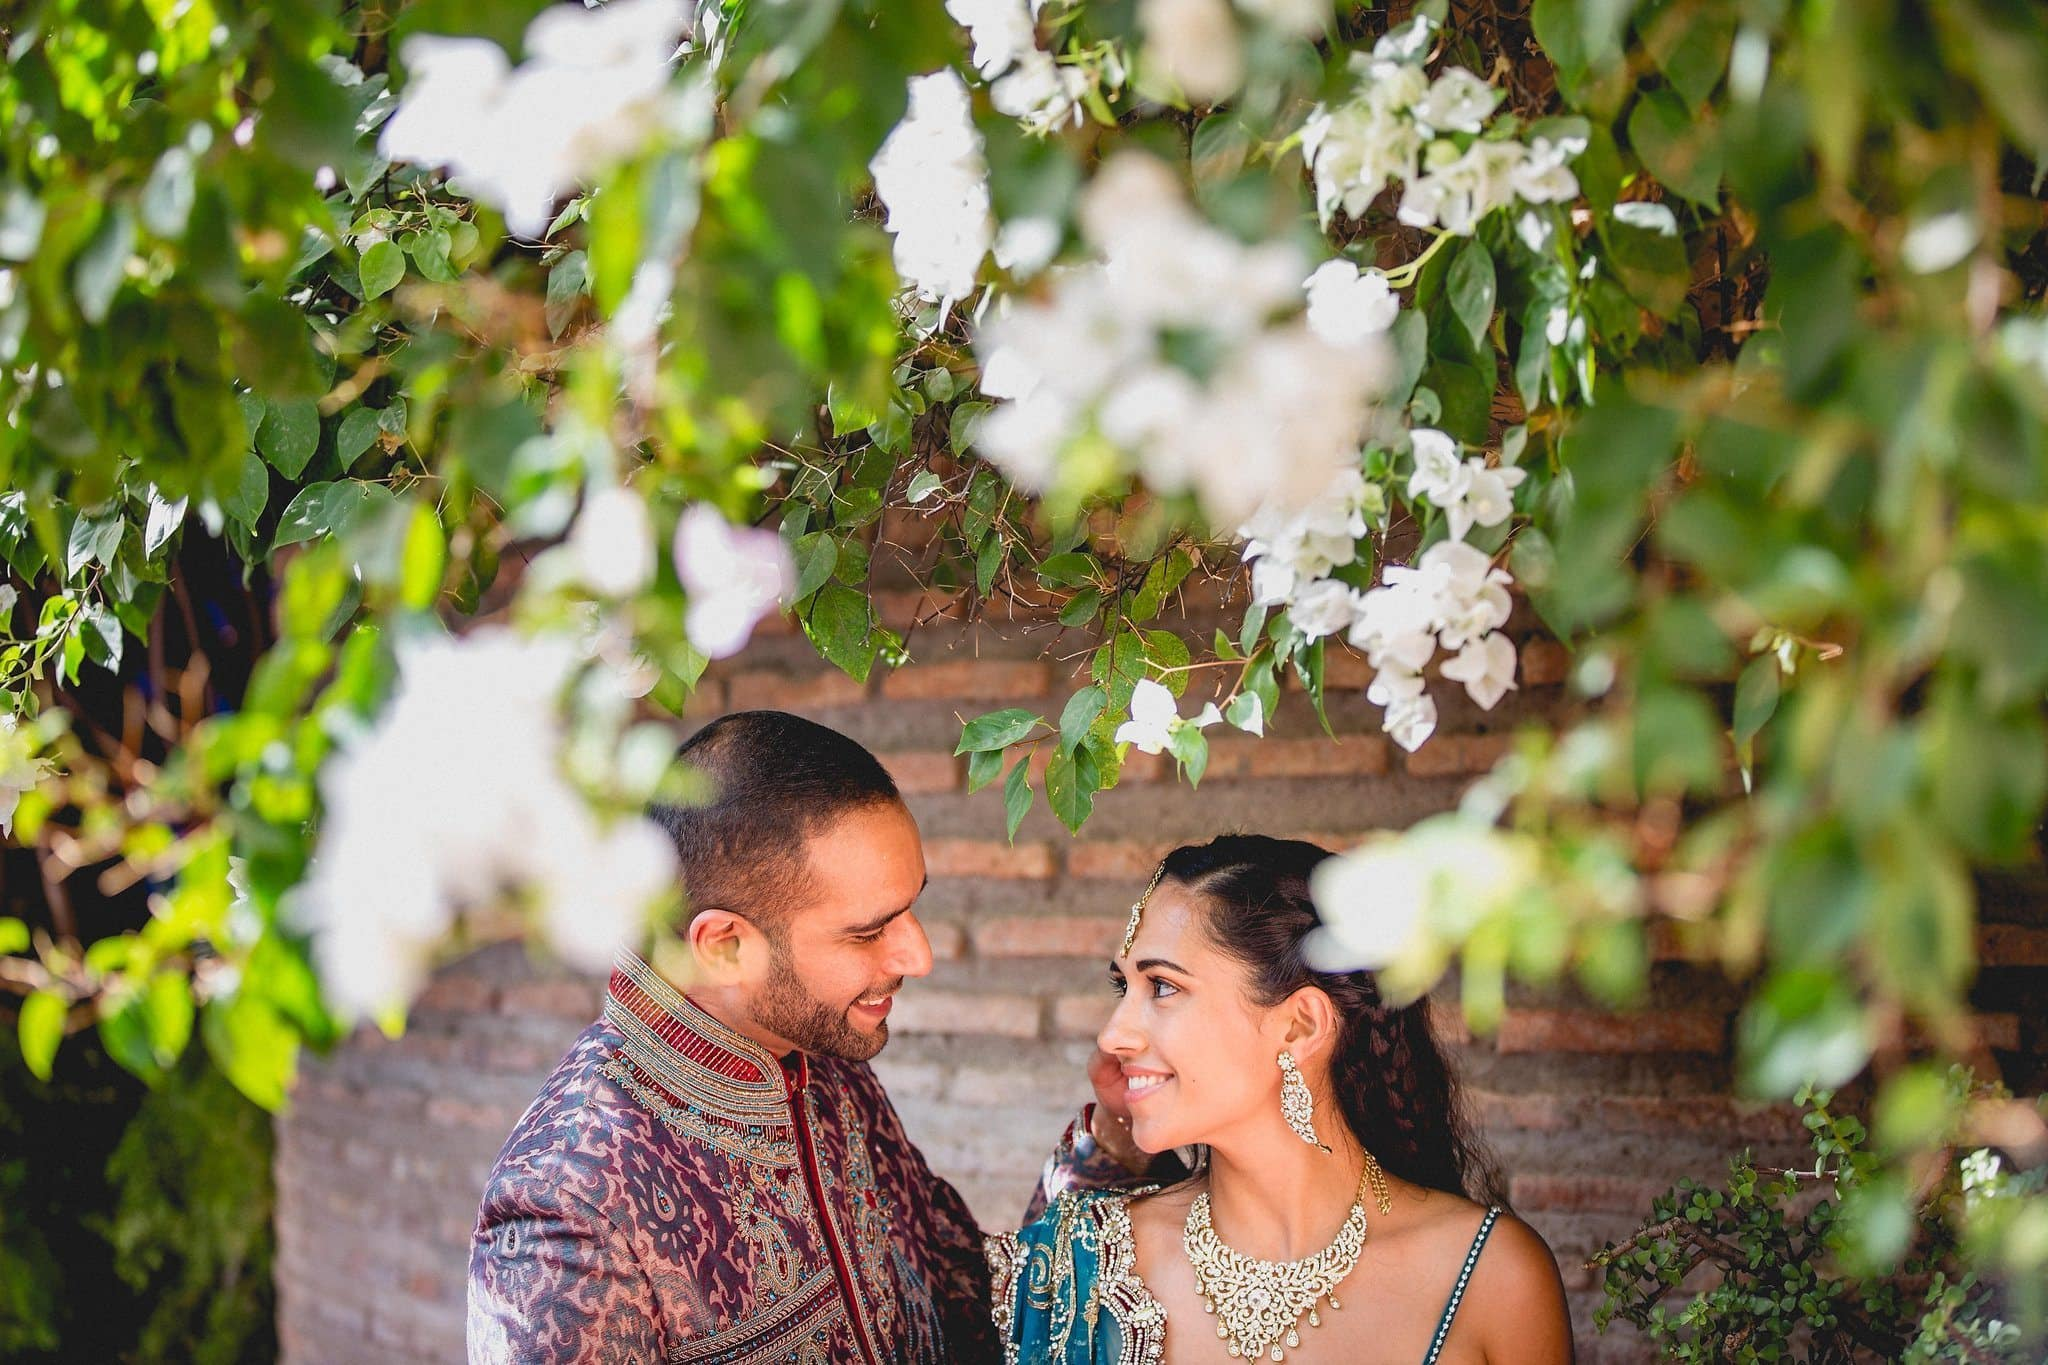 Indian couple gaze at each other under a canopy of white flowers in the Majorelle Gardens in Marrakech